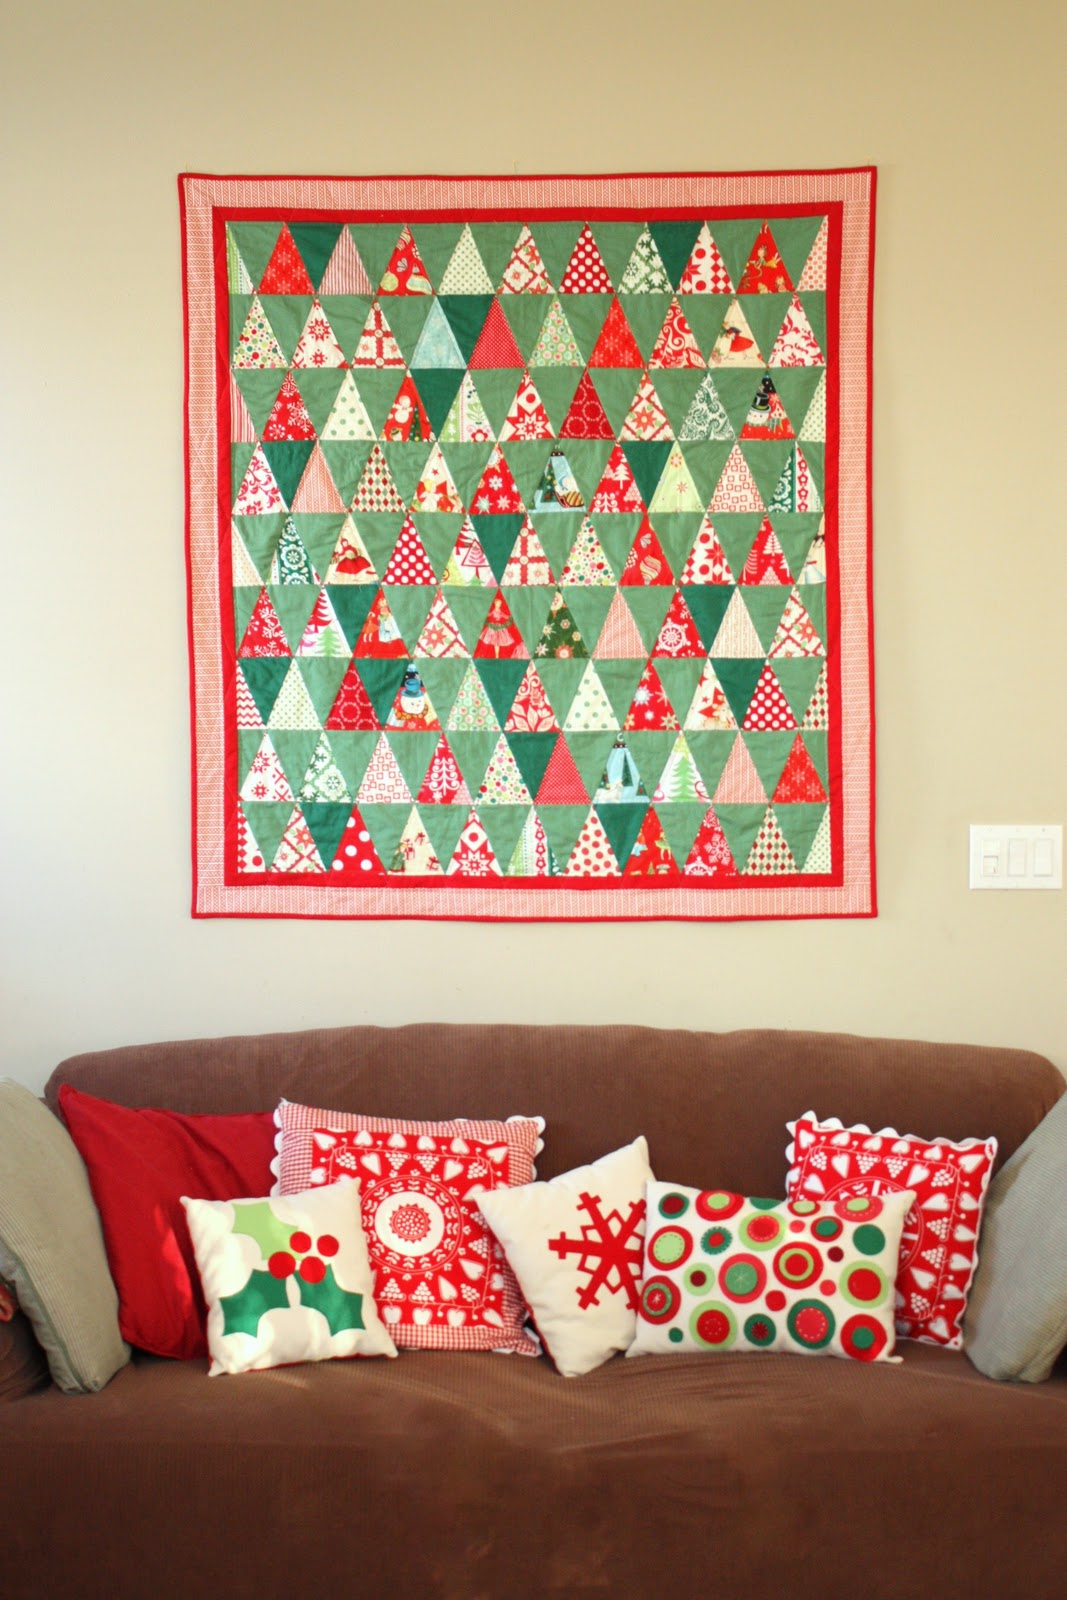 Retro-inspired Triangle Christmas Quilt